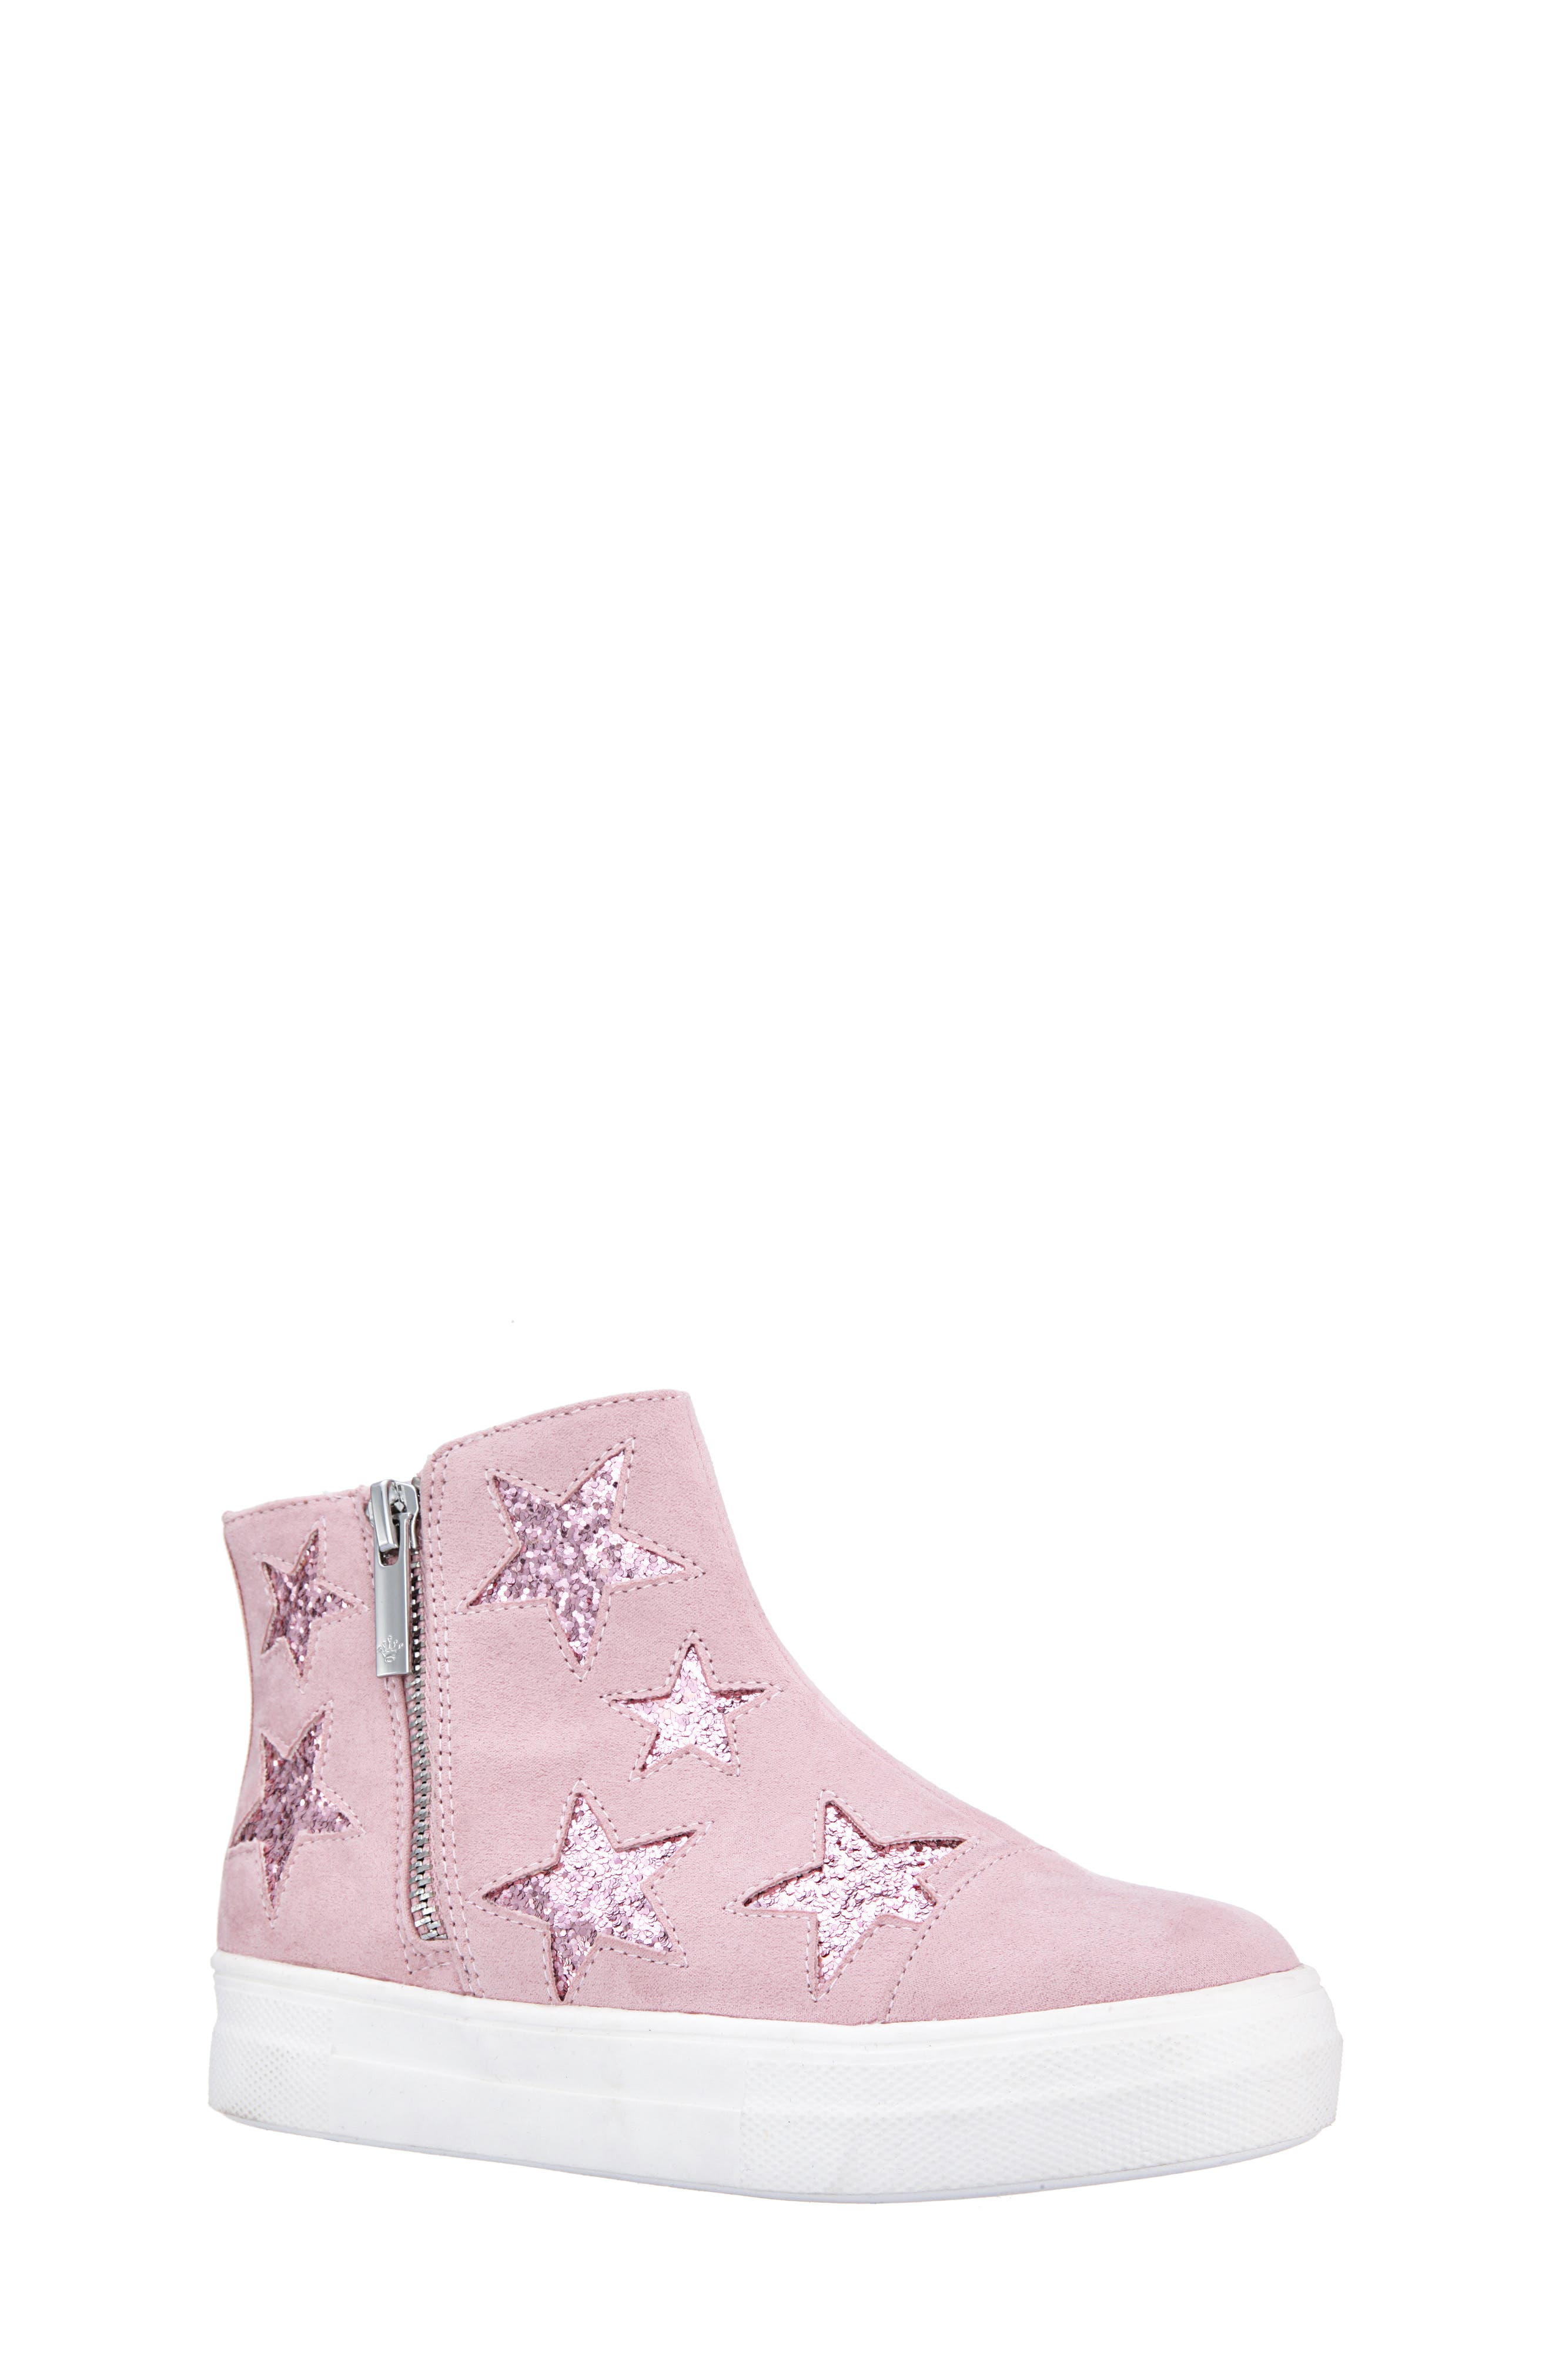 Jacqui Glitter High Top Sneaker,                             Main thumbnail 1, color,                             BLUSH MICRO SUEDE